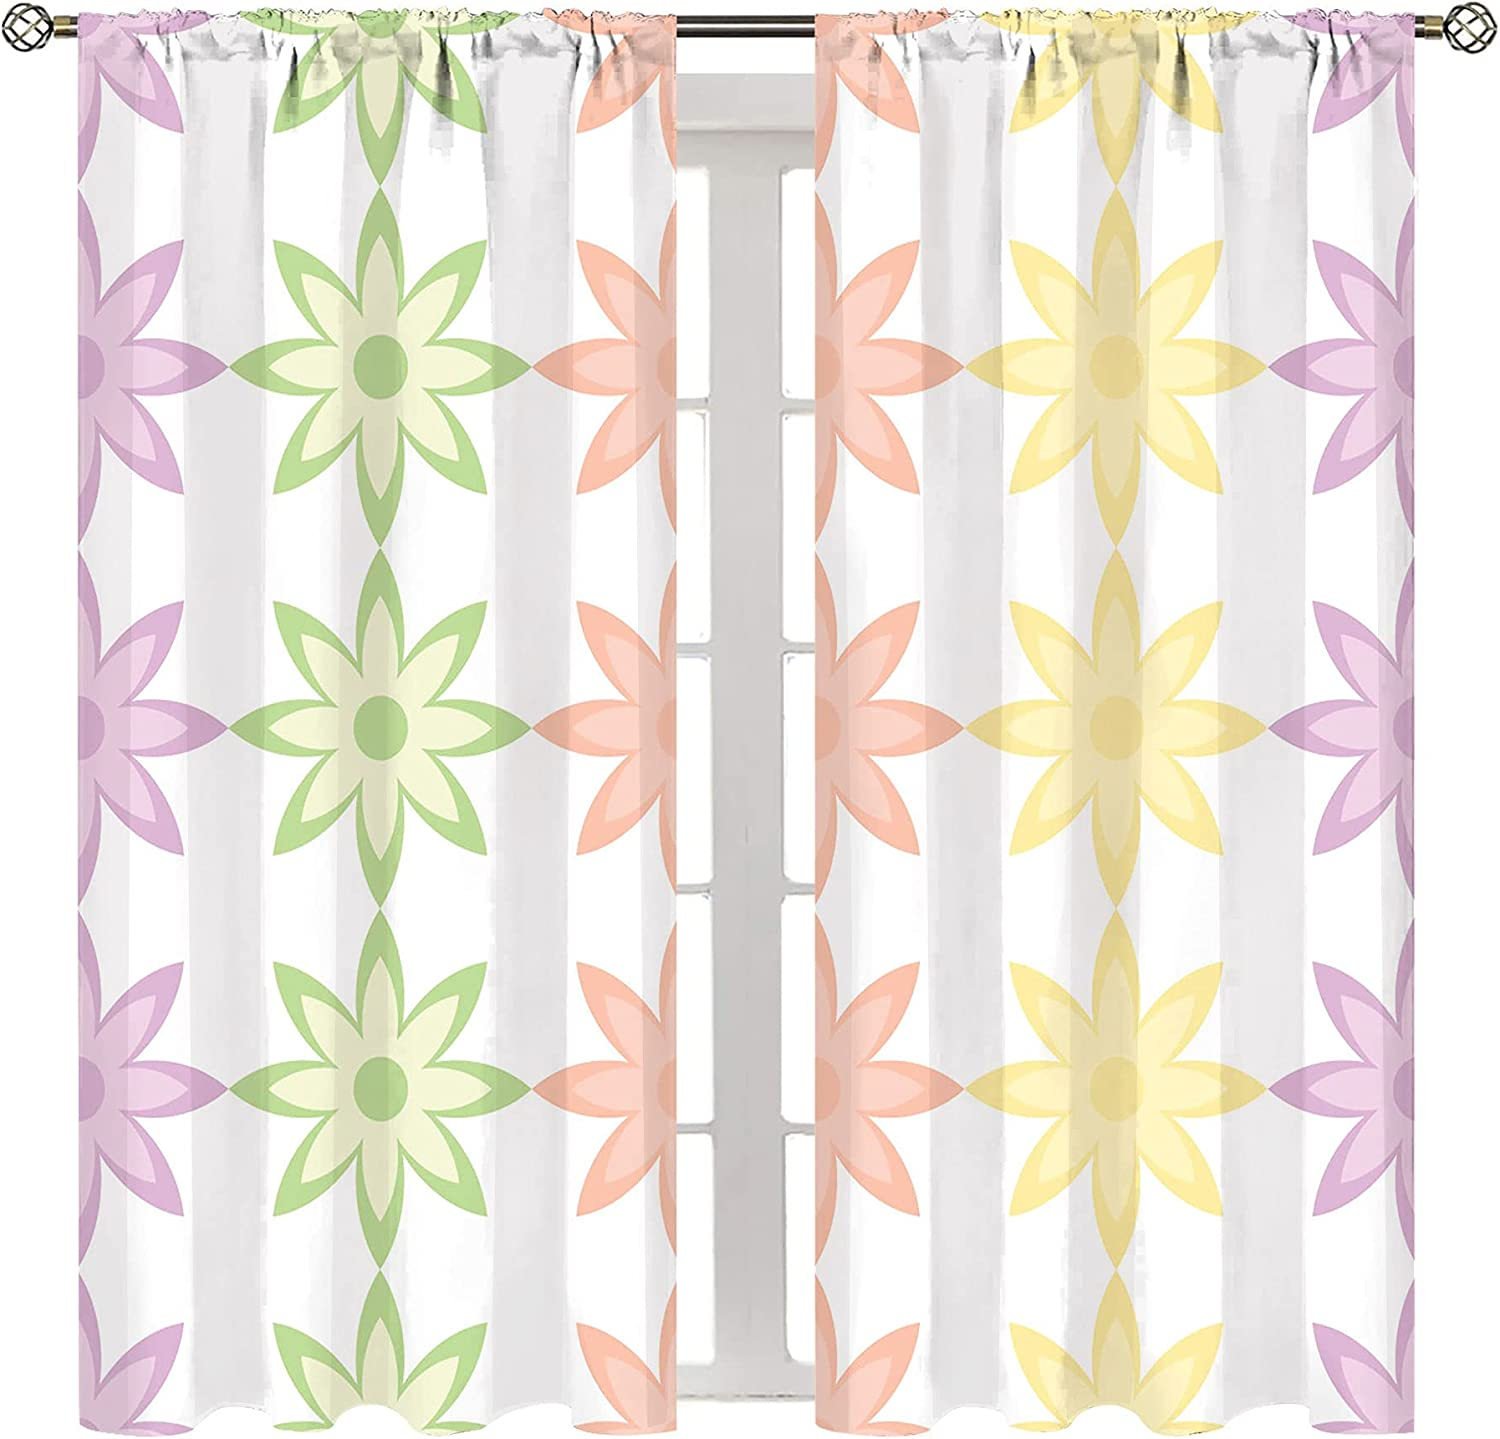 HSERNED Blackout Rod Pocket Curtains Flower Bedroom for Andetals Genuine Free Shipping Max 57% OFF